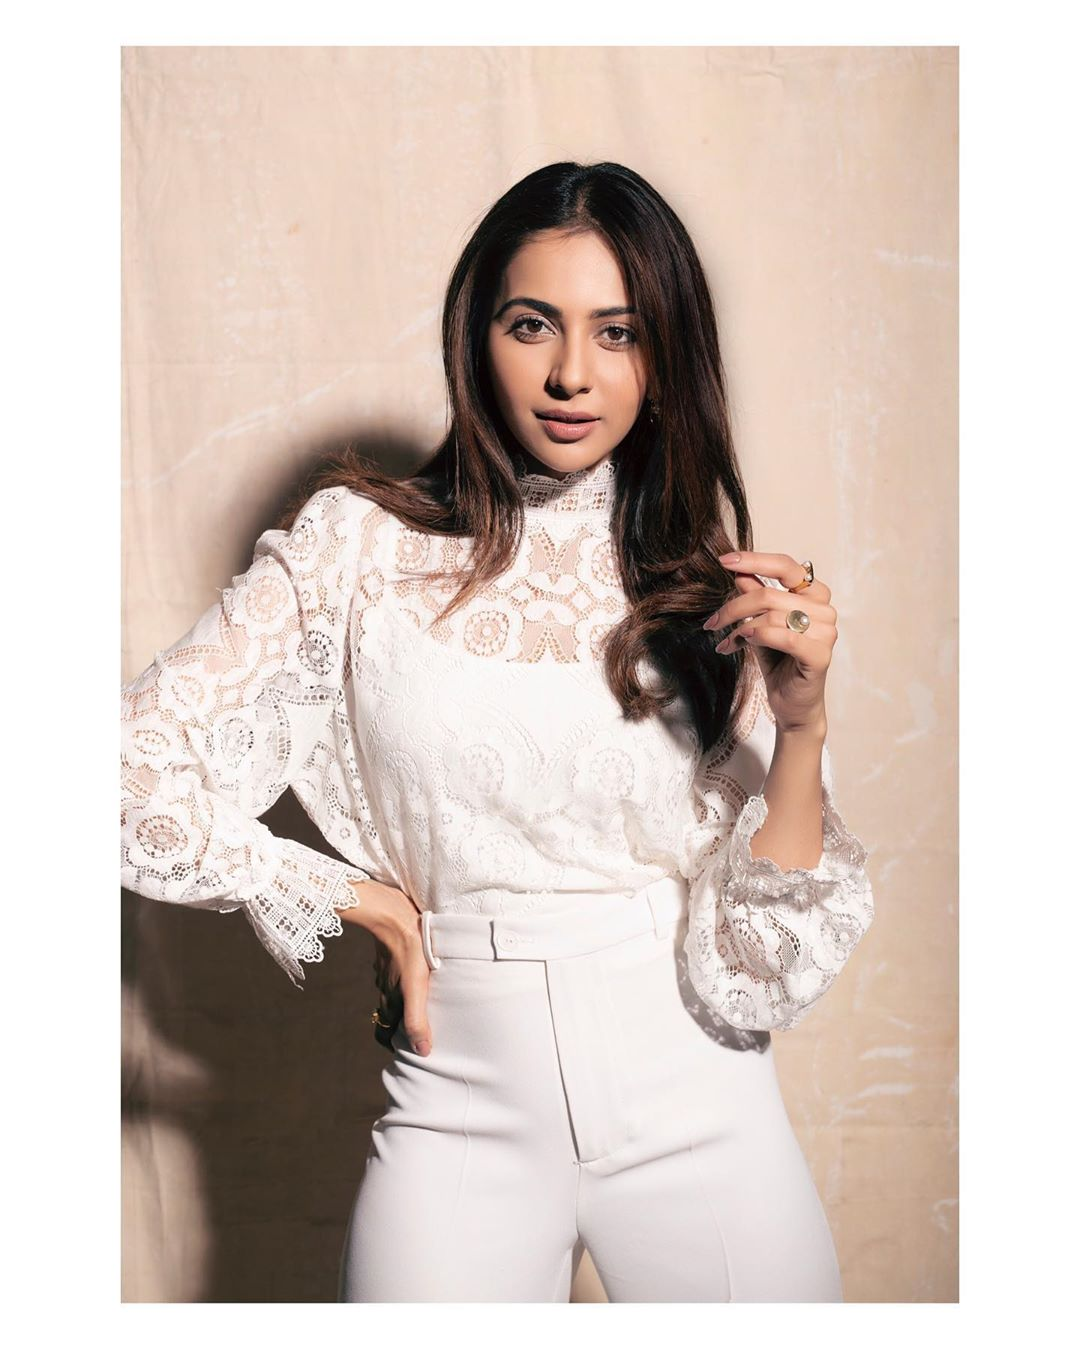 Rakul Preet Milky White Photo Shoot